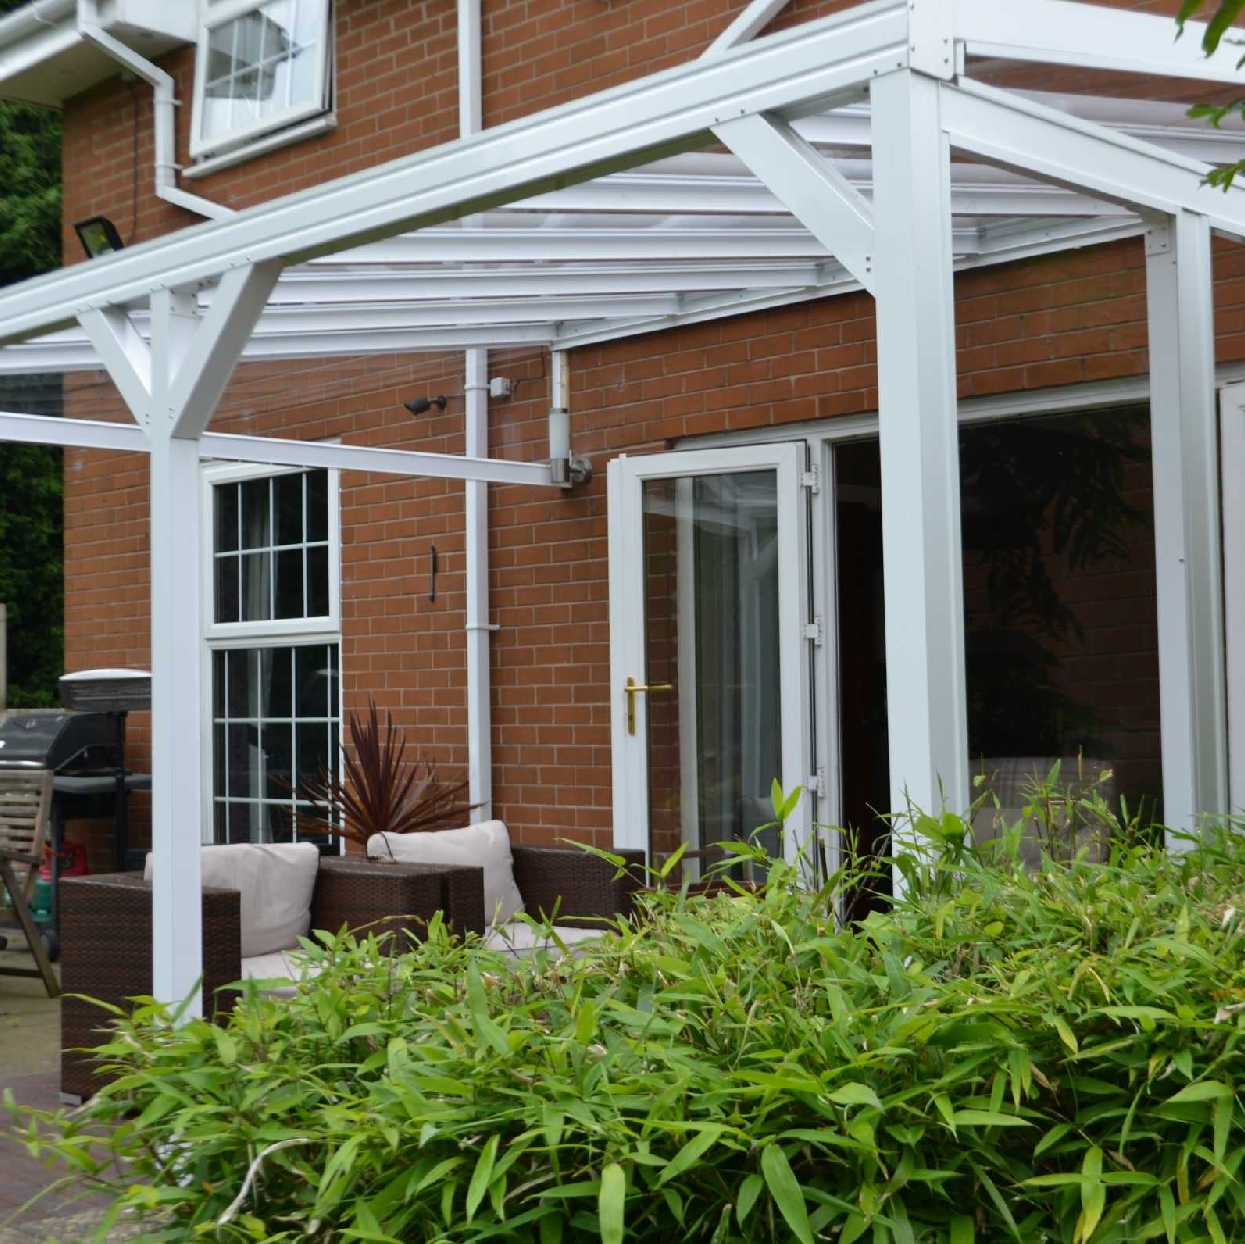 Omega Smart White Lean-To Canopy with 6mm Glass Clear Plate Polycarbonate Glazing - 6.3m (W) x 2.5m (P), (4) Supporting Posts from Omega Build